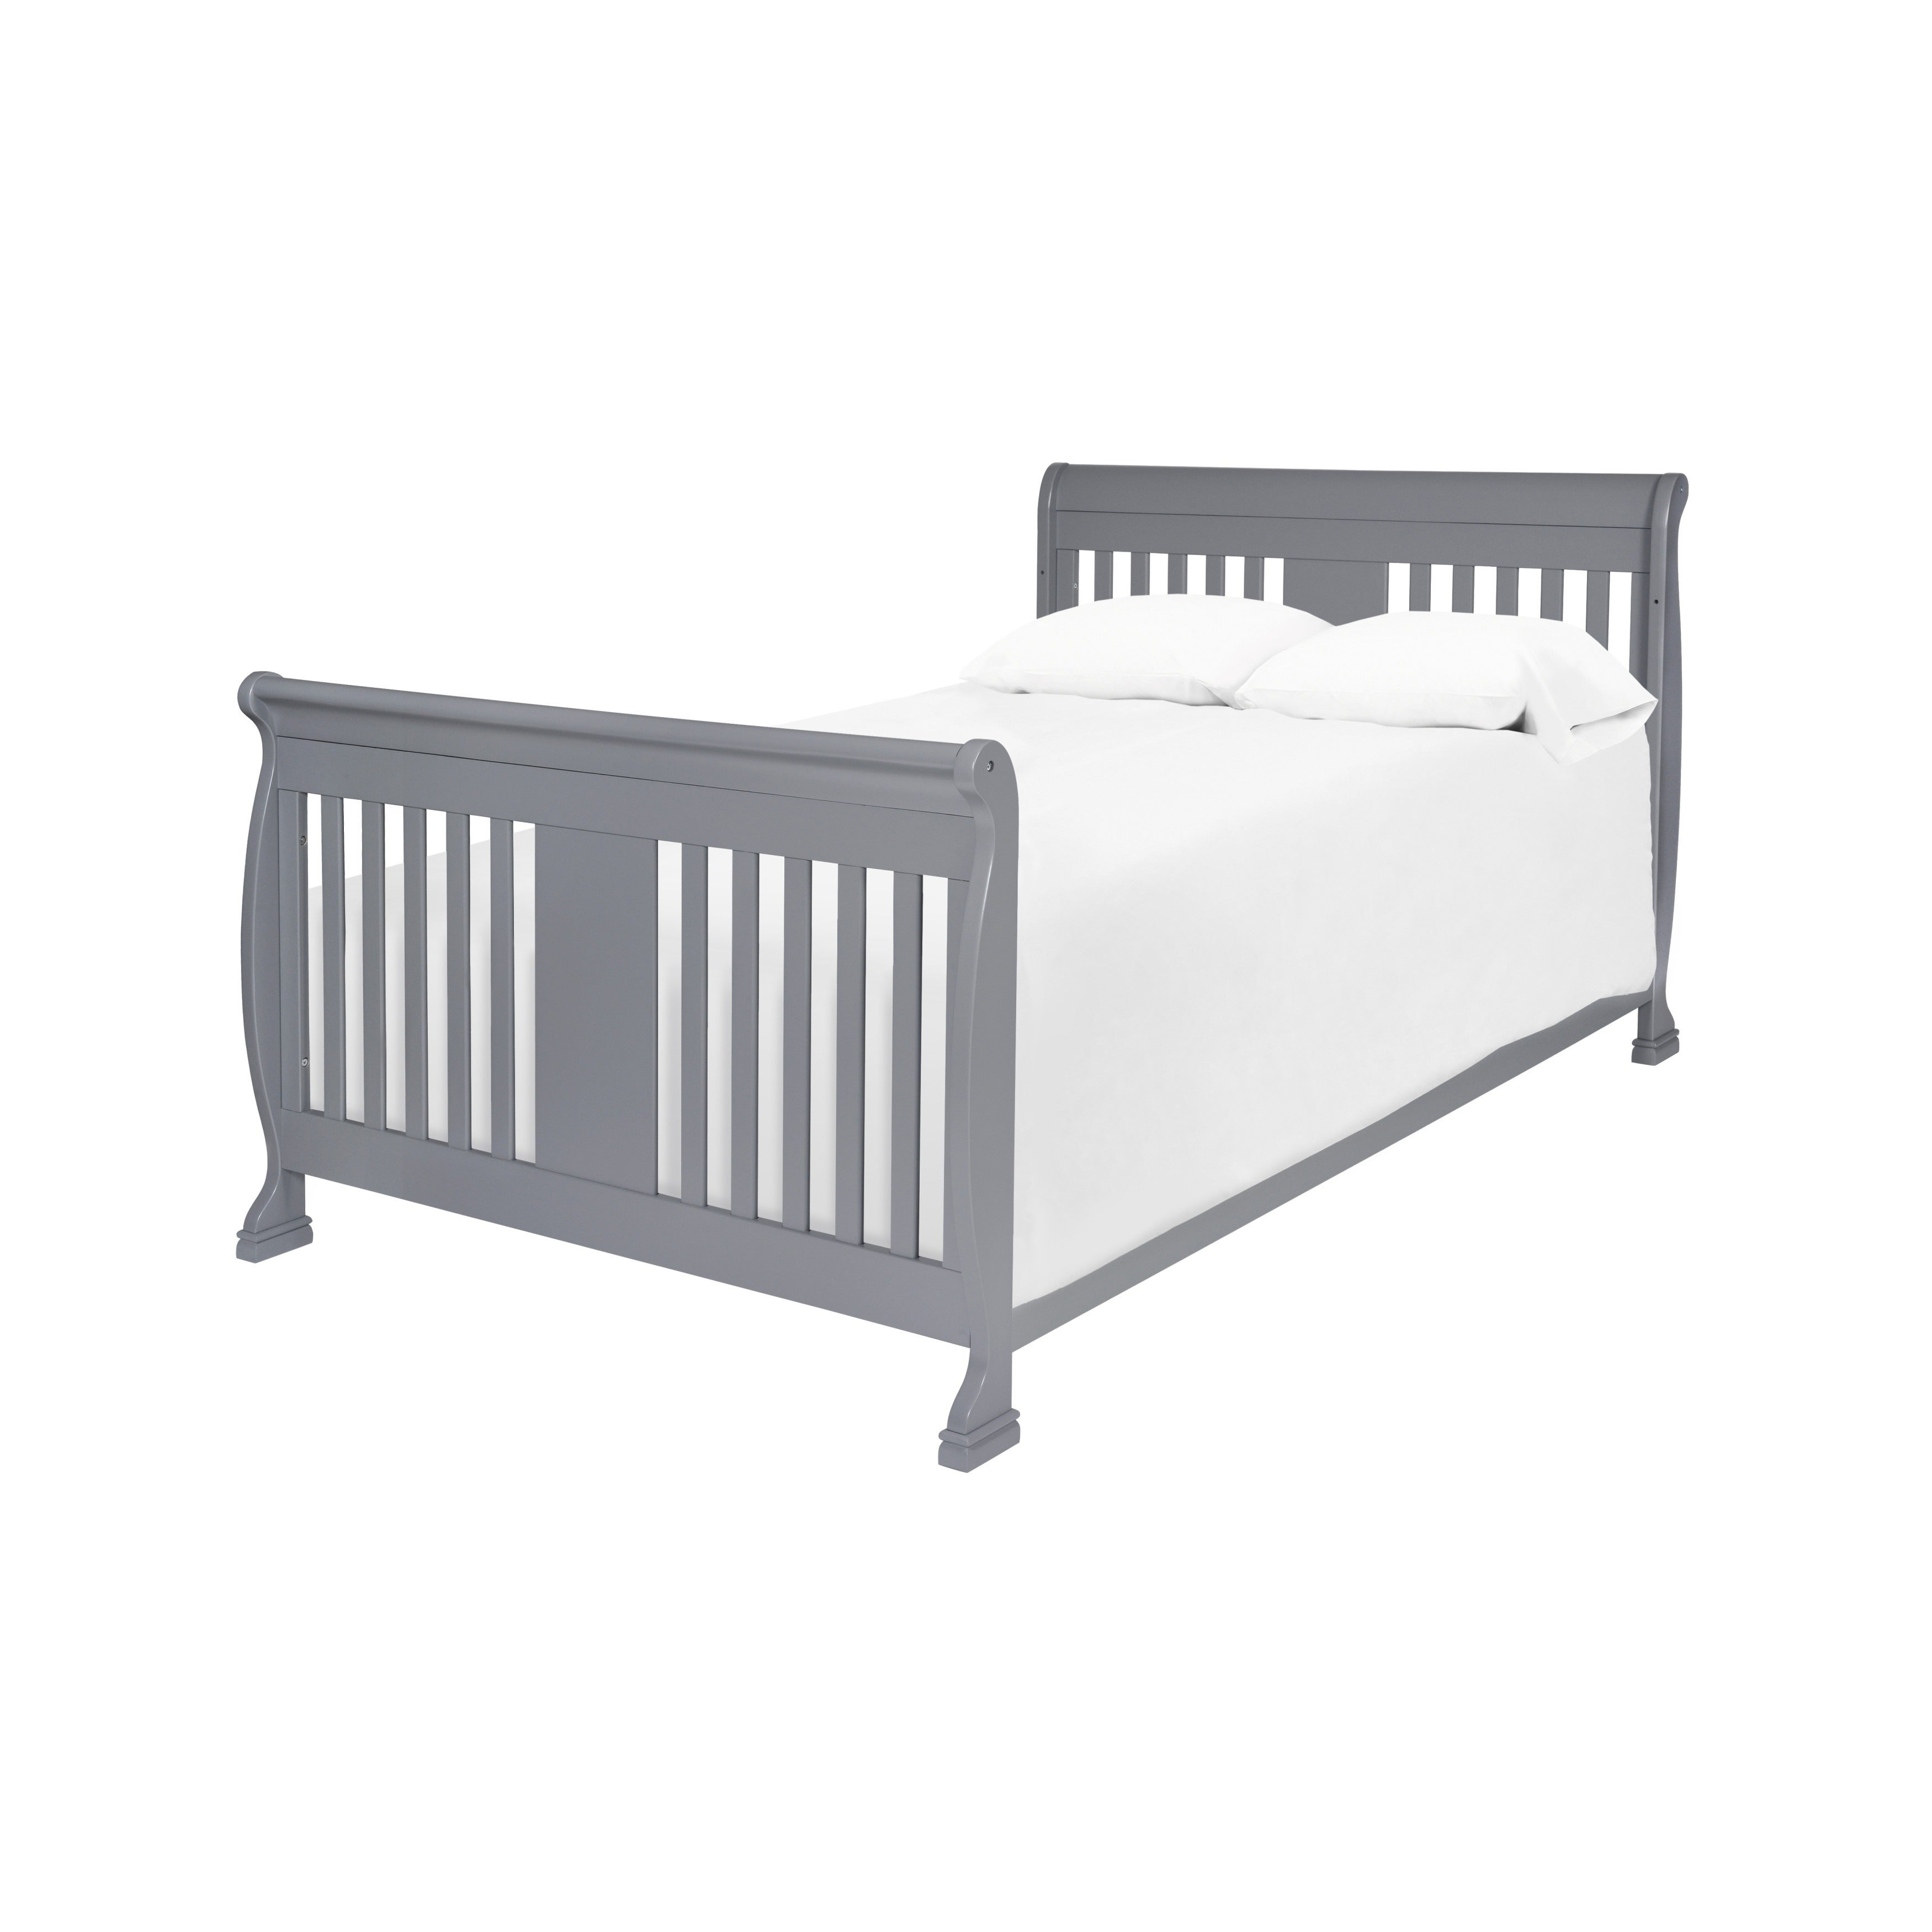 Shop Davinci Porter 4 In 1 Convertible Crib With Toddler Bed